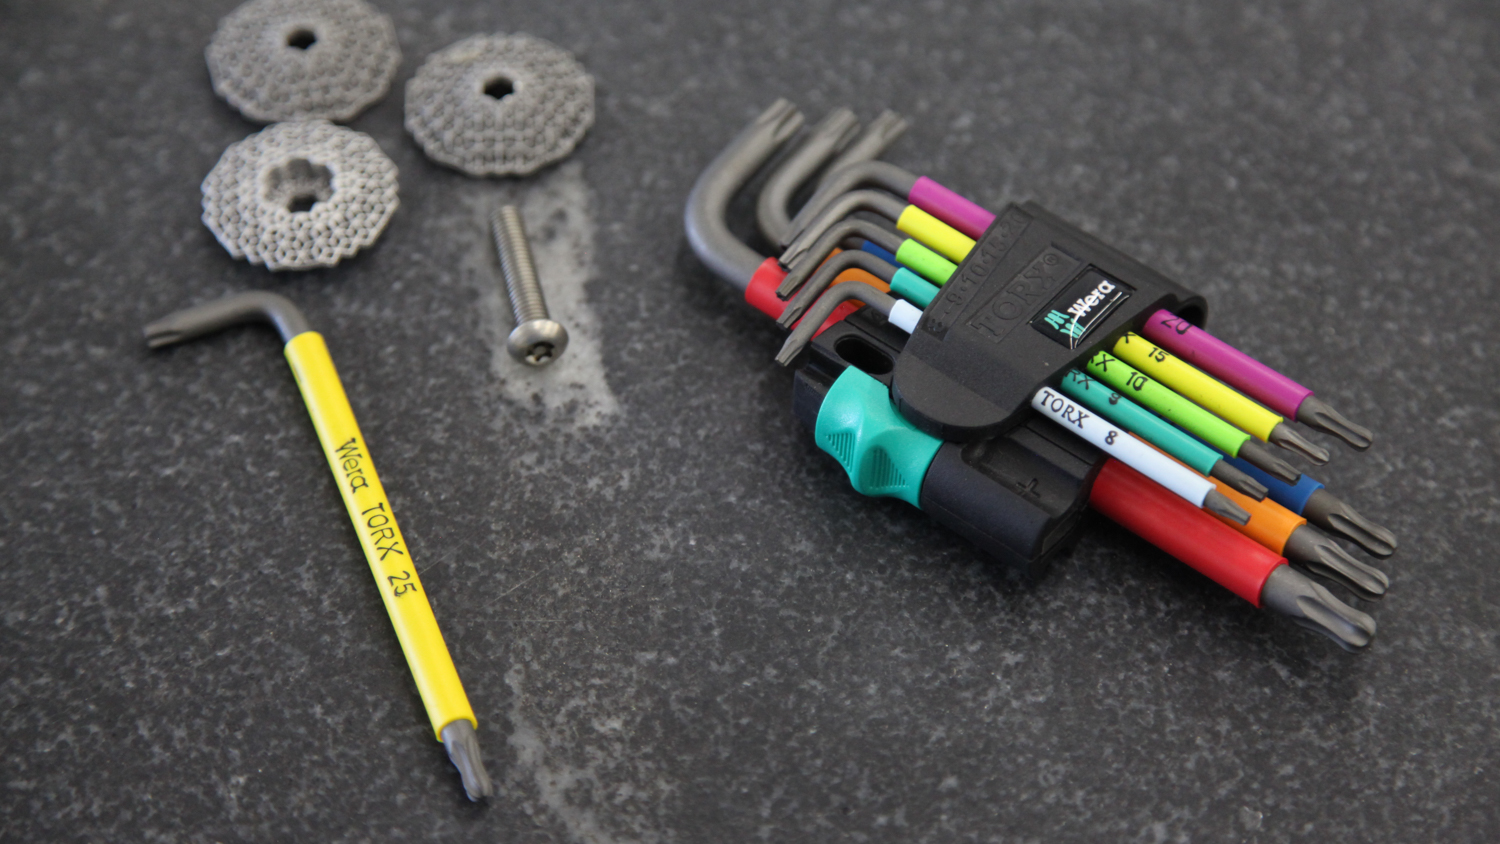 Wera Security Torx drivers - Color coded & very well built.